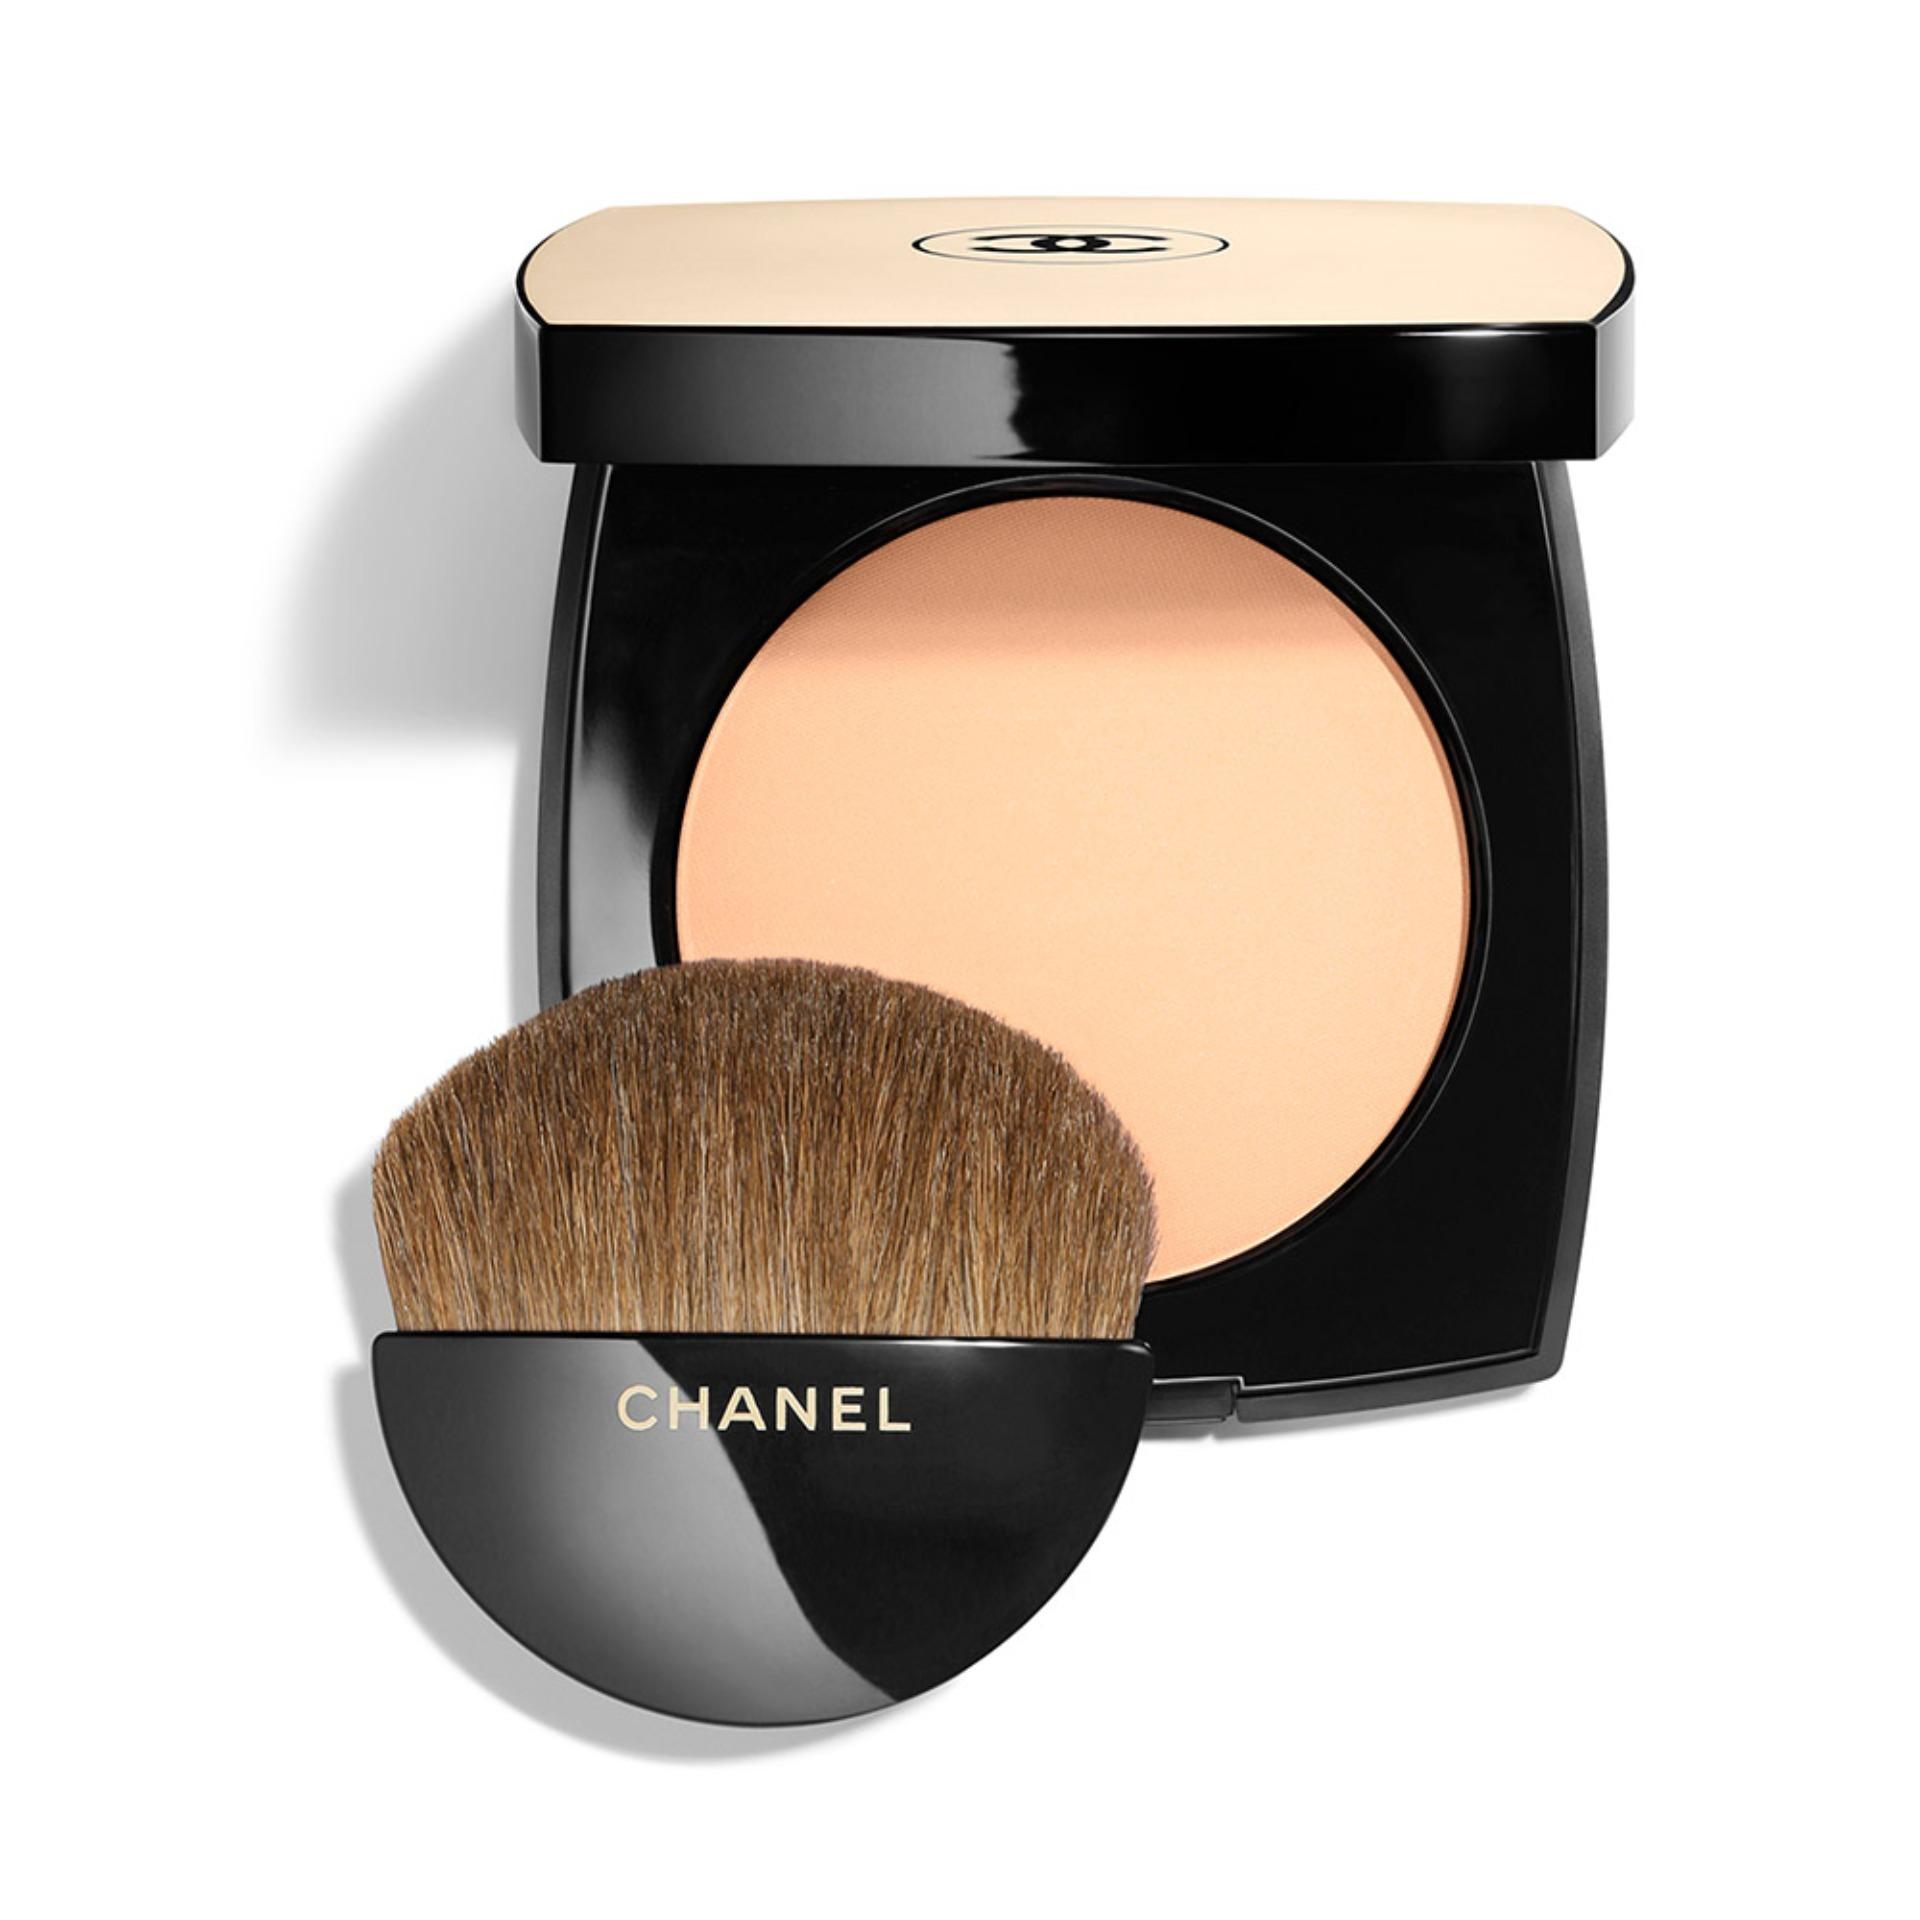 Chanel Les Beiges Healthy Glow Sheer Powder SPF 15 (N°20)